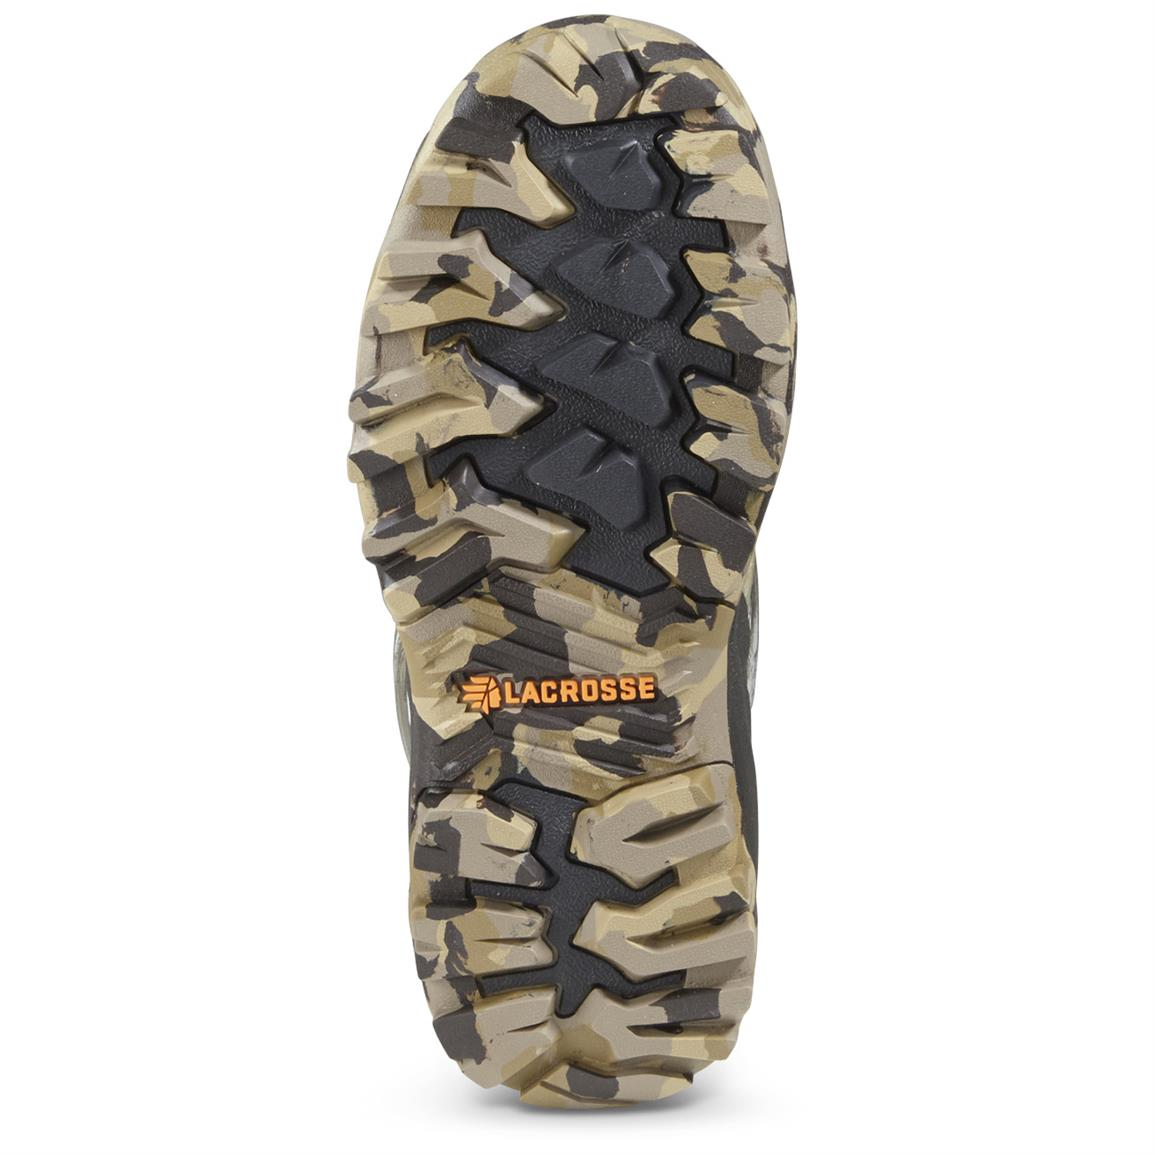 The non-loading Burly Pro outsole provides terrific traction in all hunting conditions